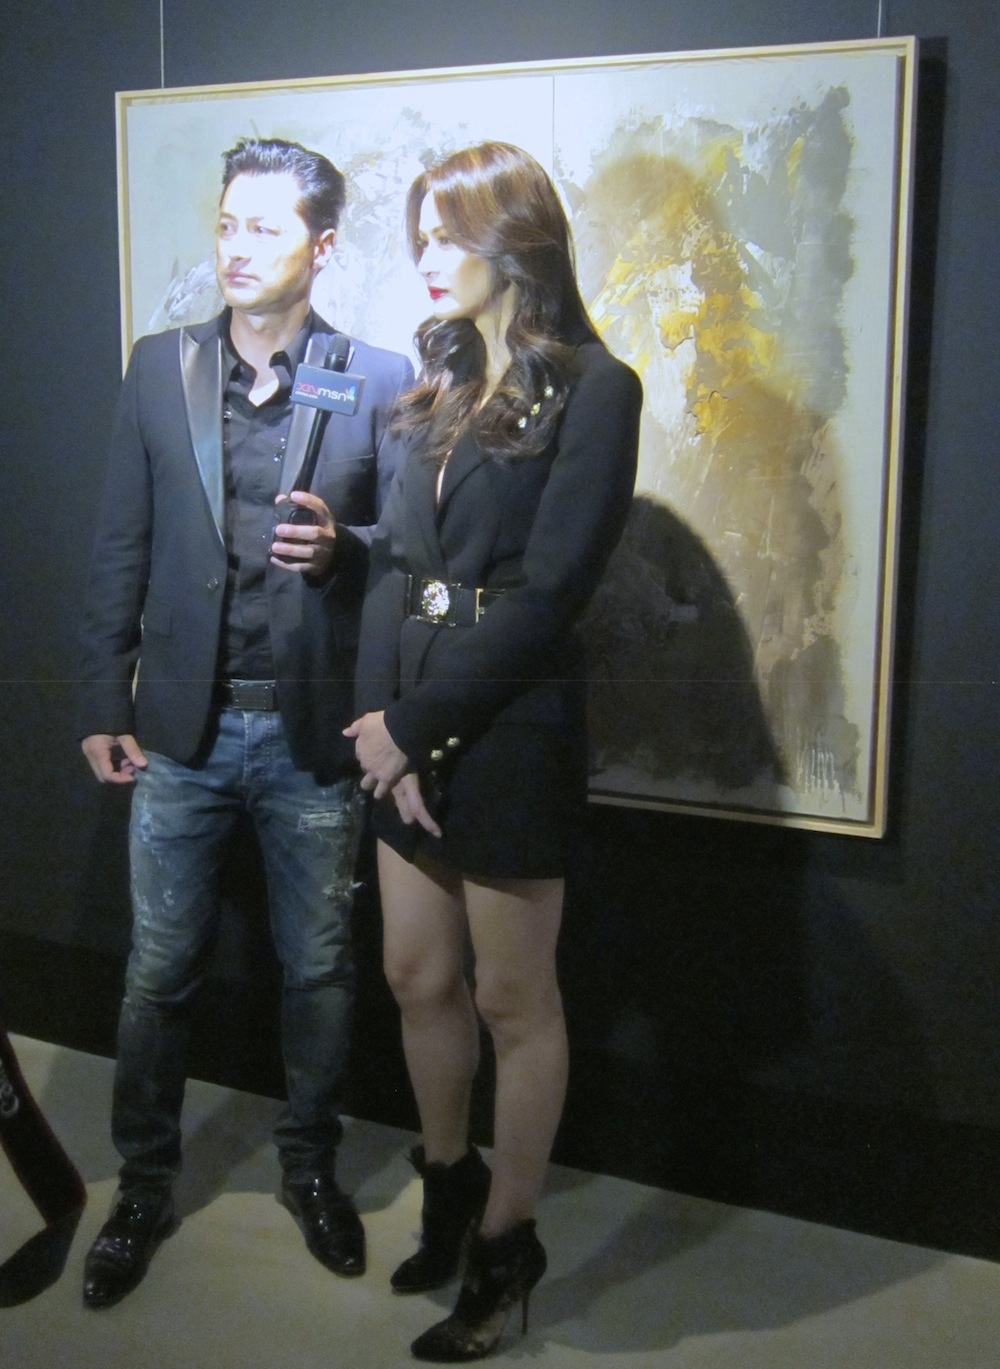 Michael Wong and Janet Ma at MAD Singapore | curlytraveller.com